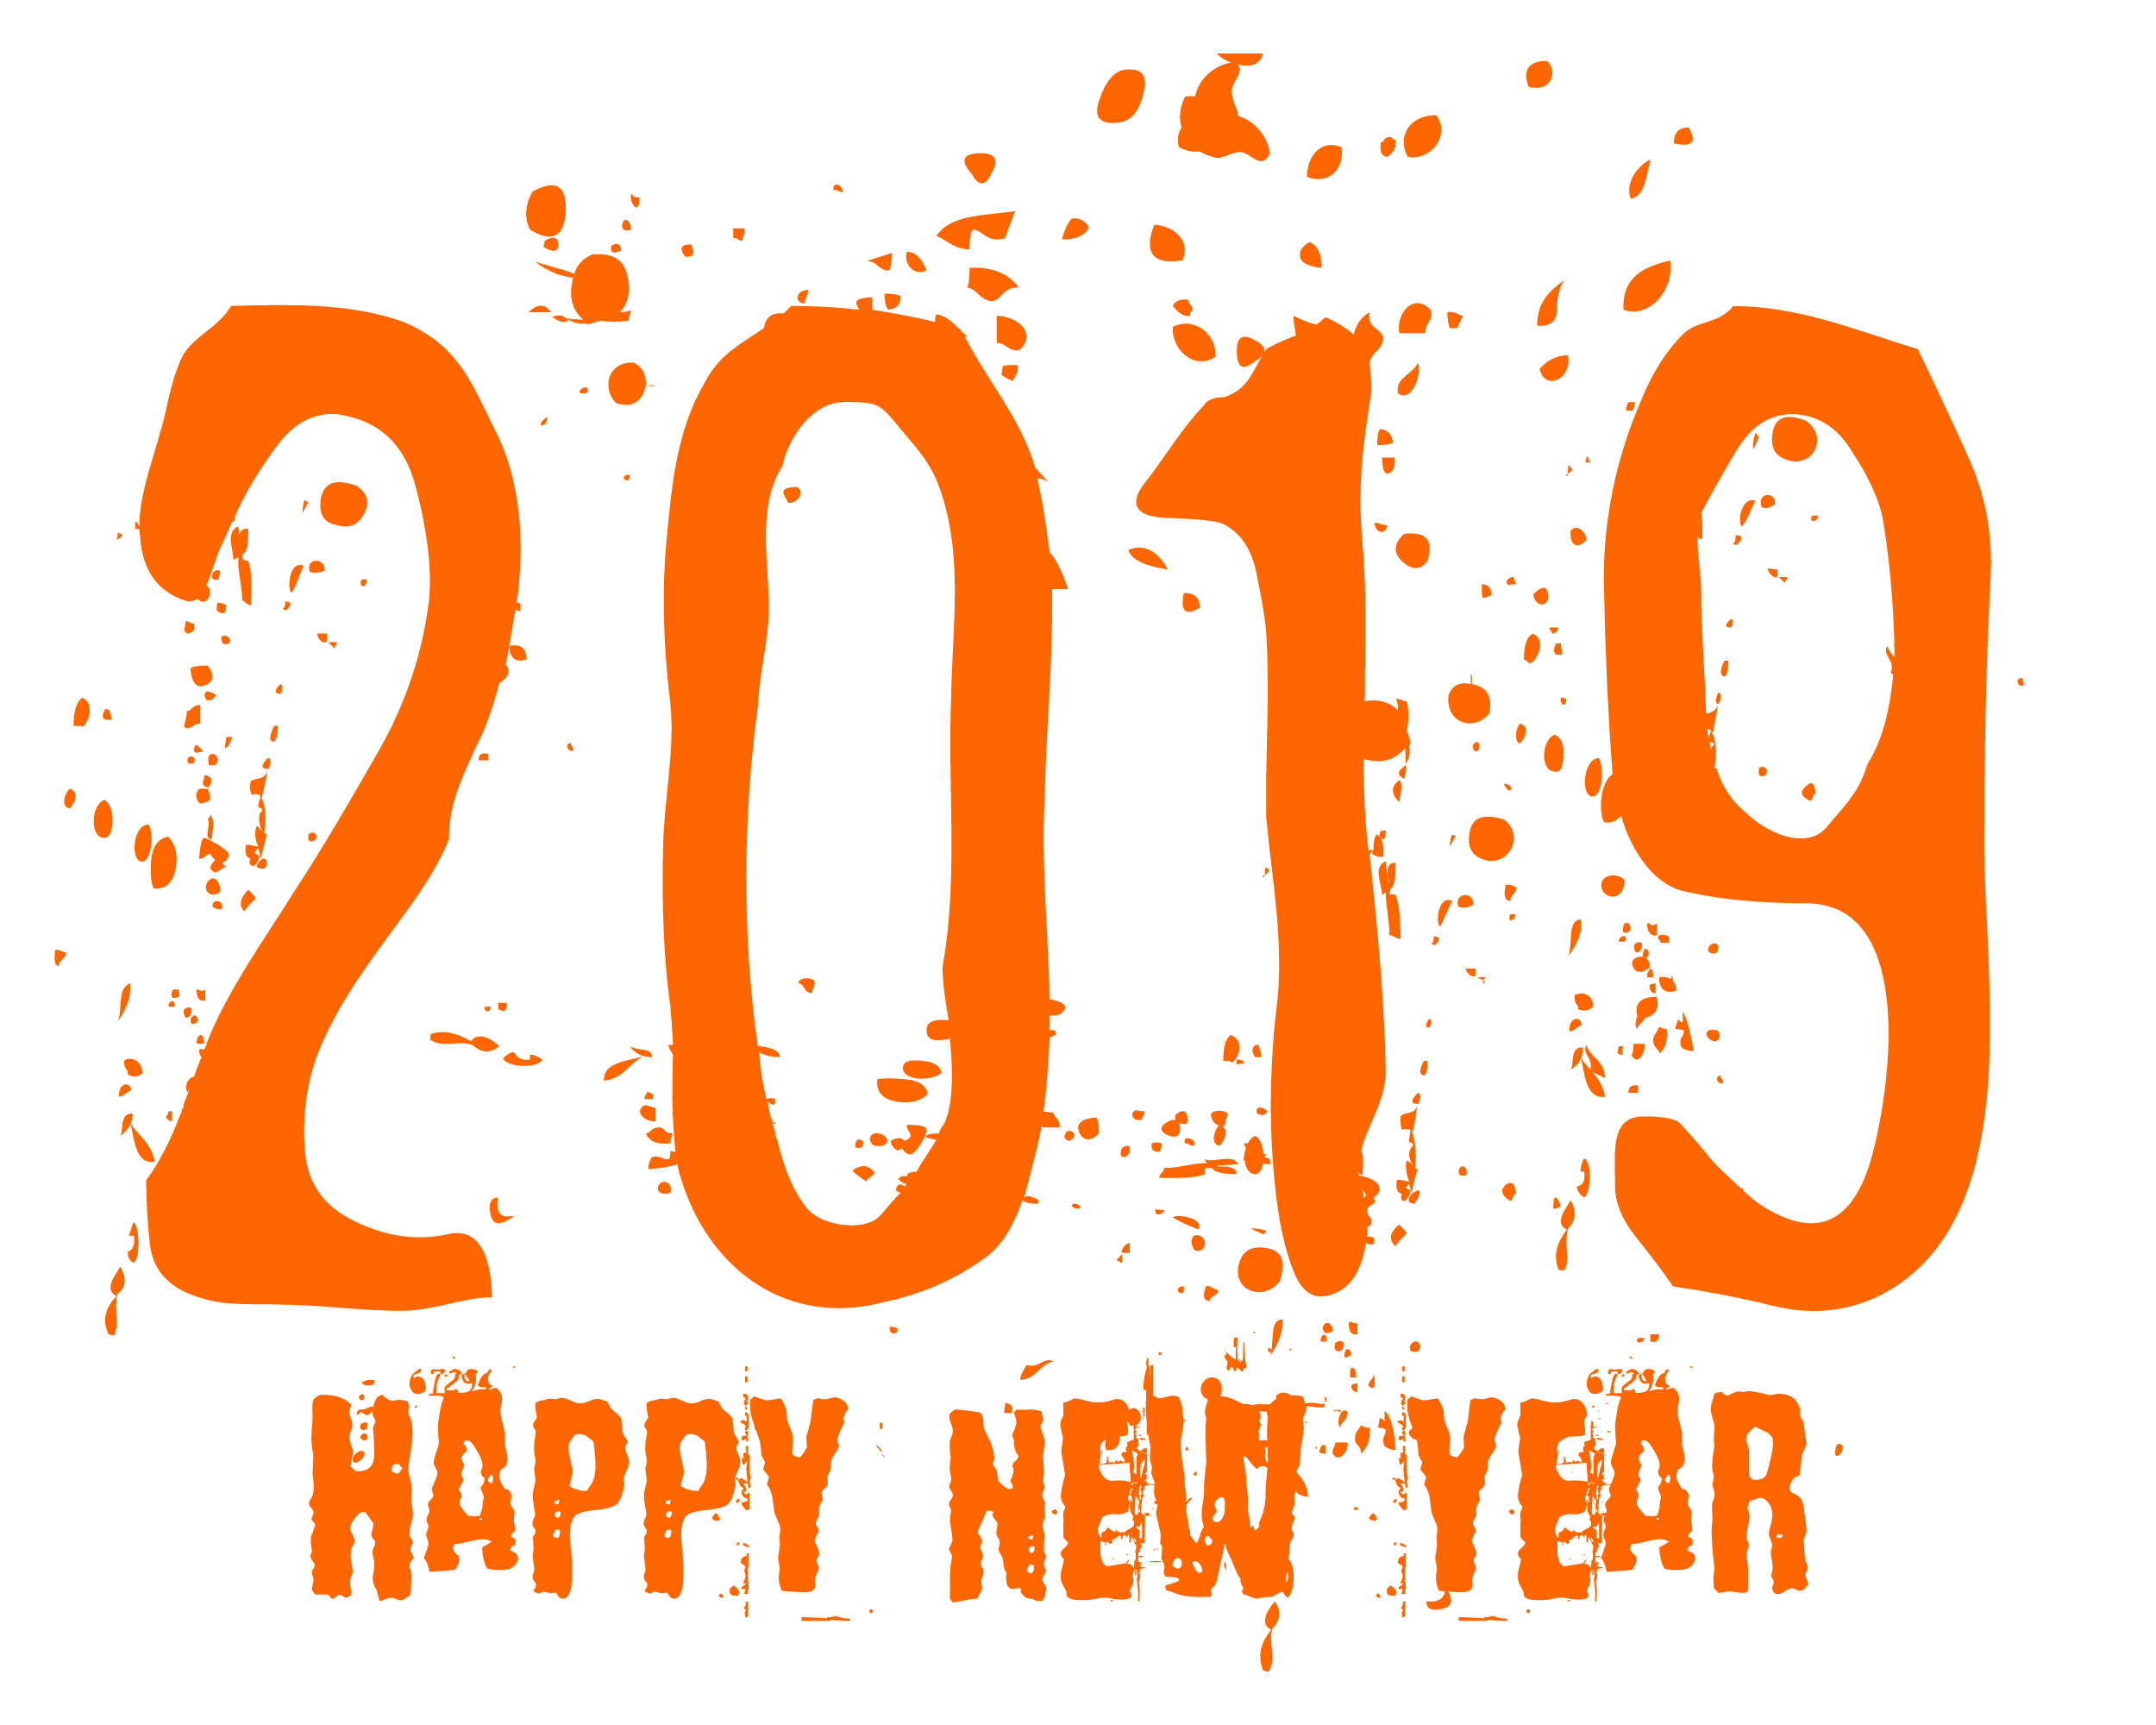 I_AM Wish You Happy New Year (With images) Happy new